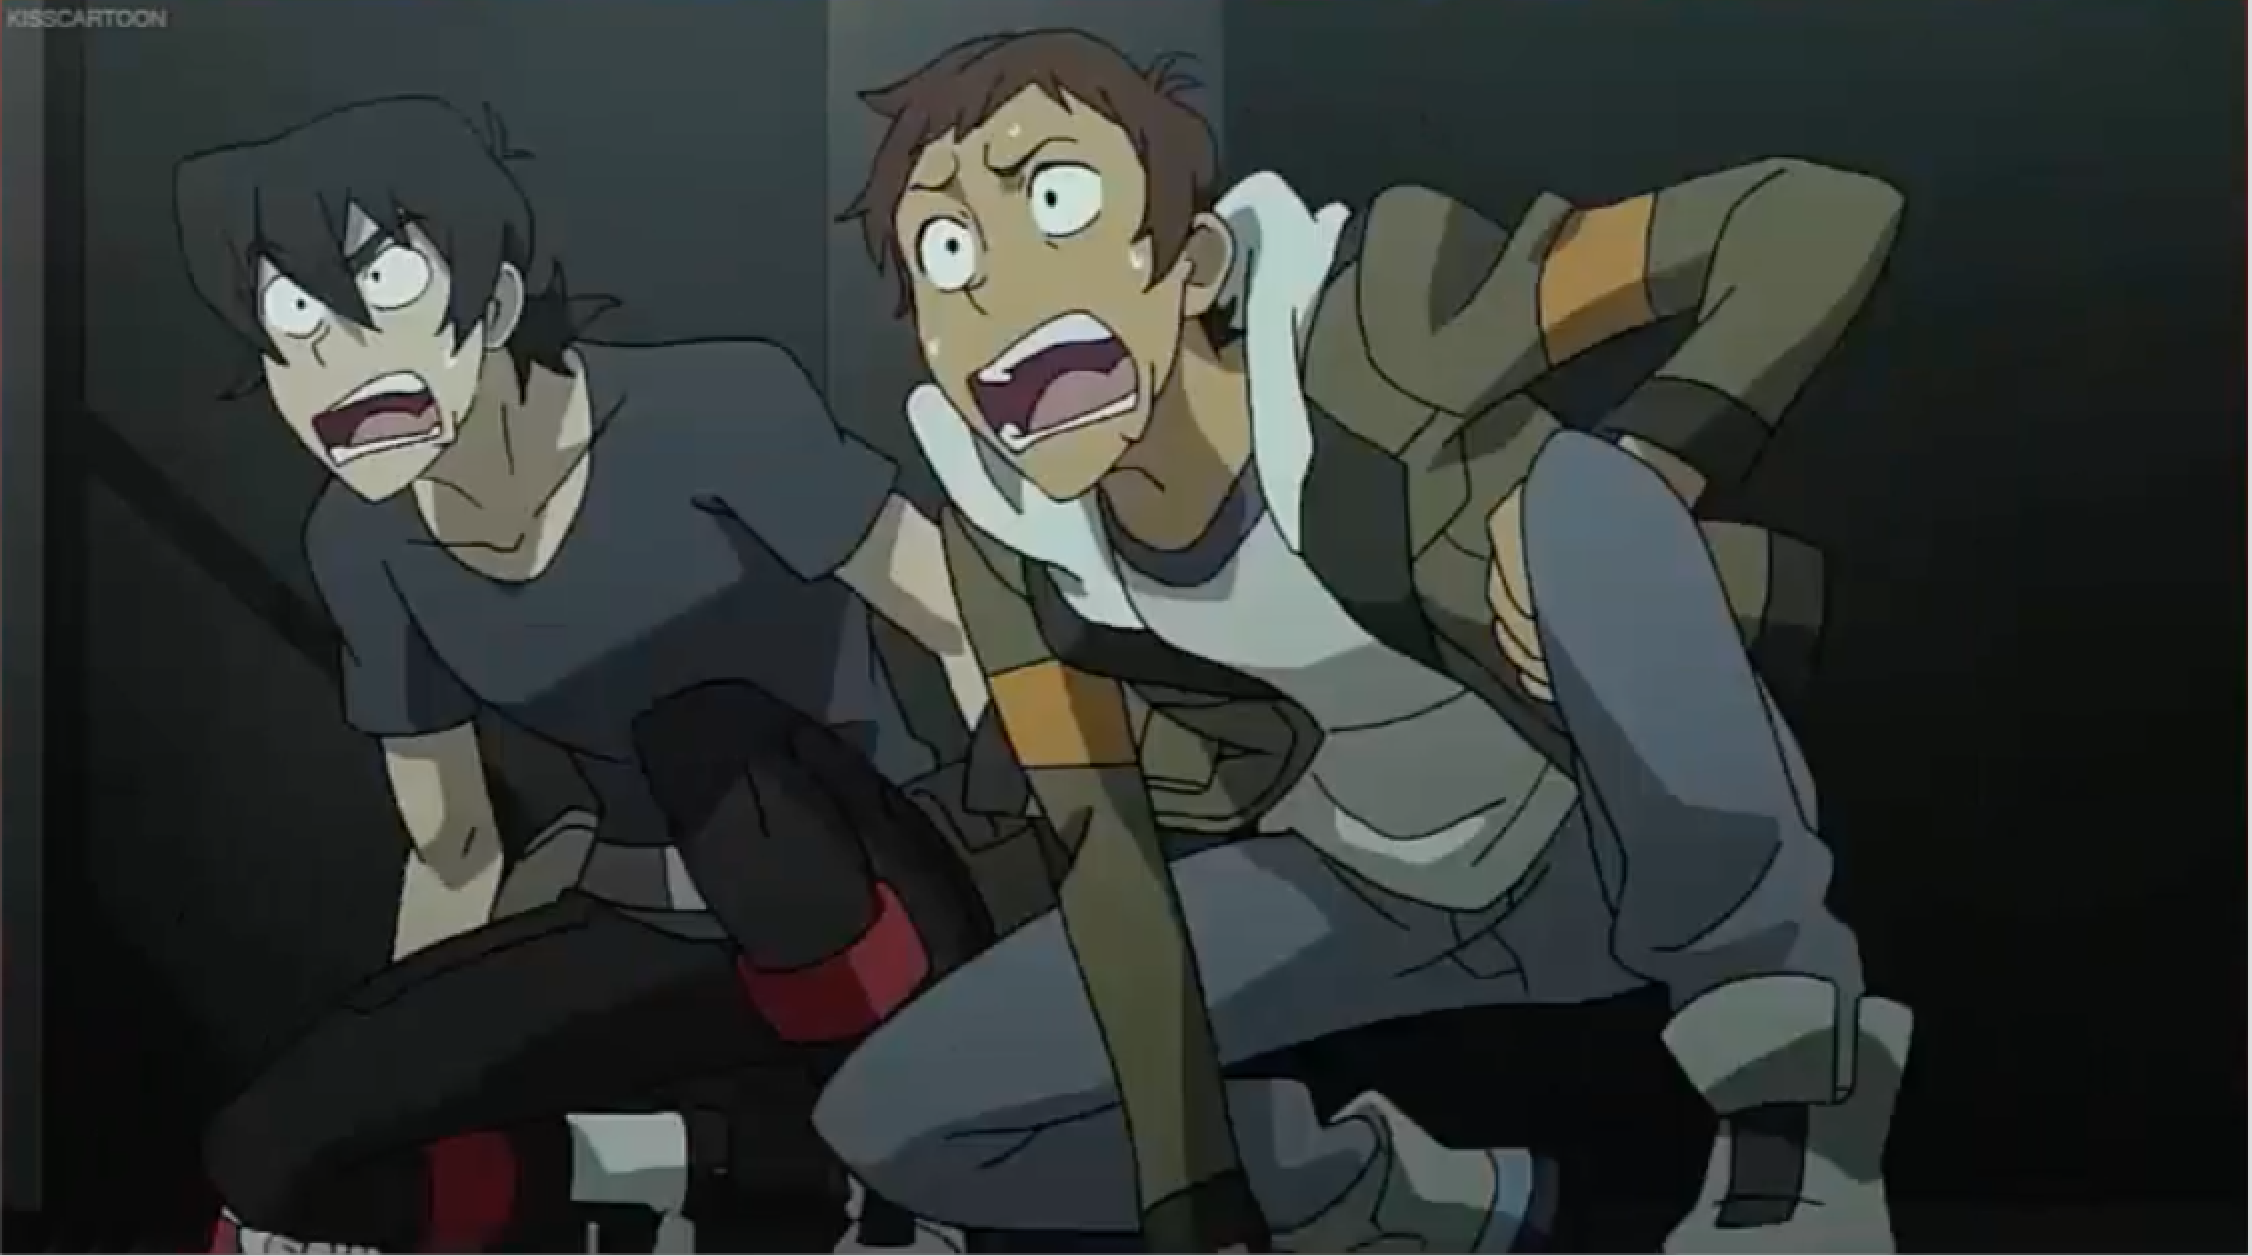 Keith and Lance screaming and ran for their lives from Voltron